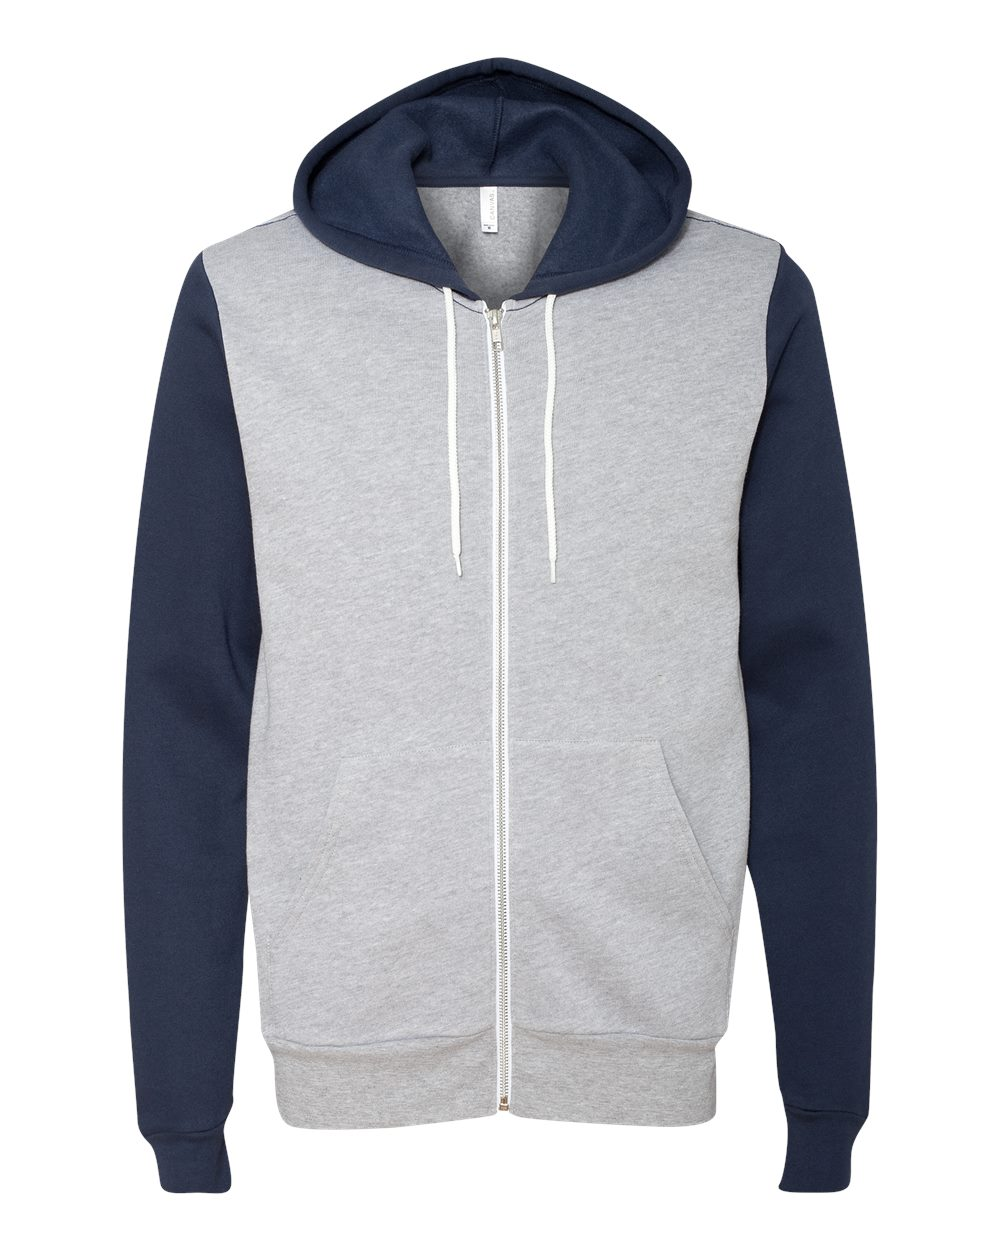 click to view Athletic Heather/ Navy